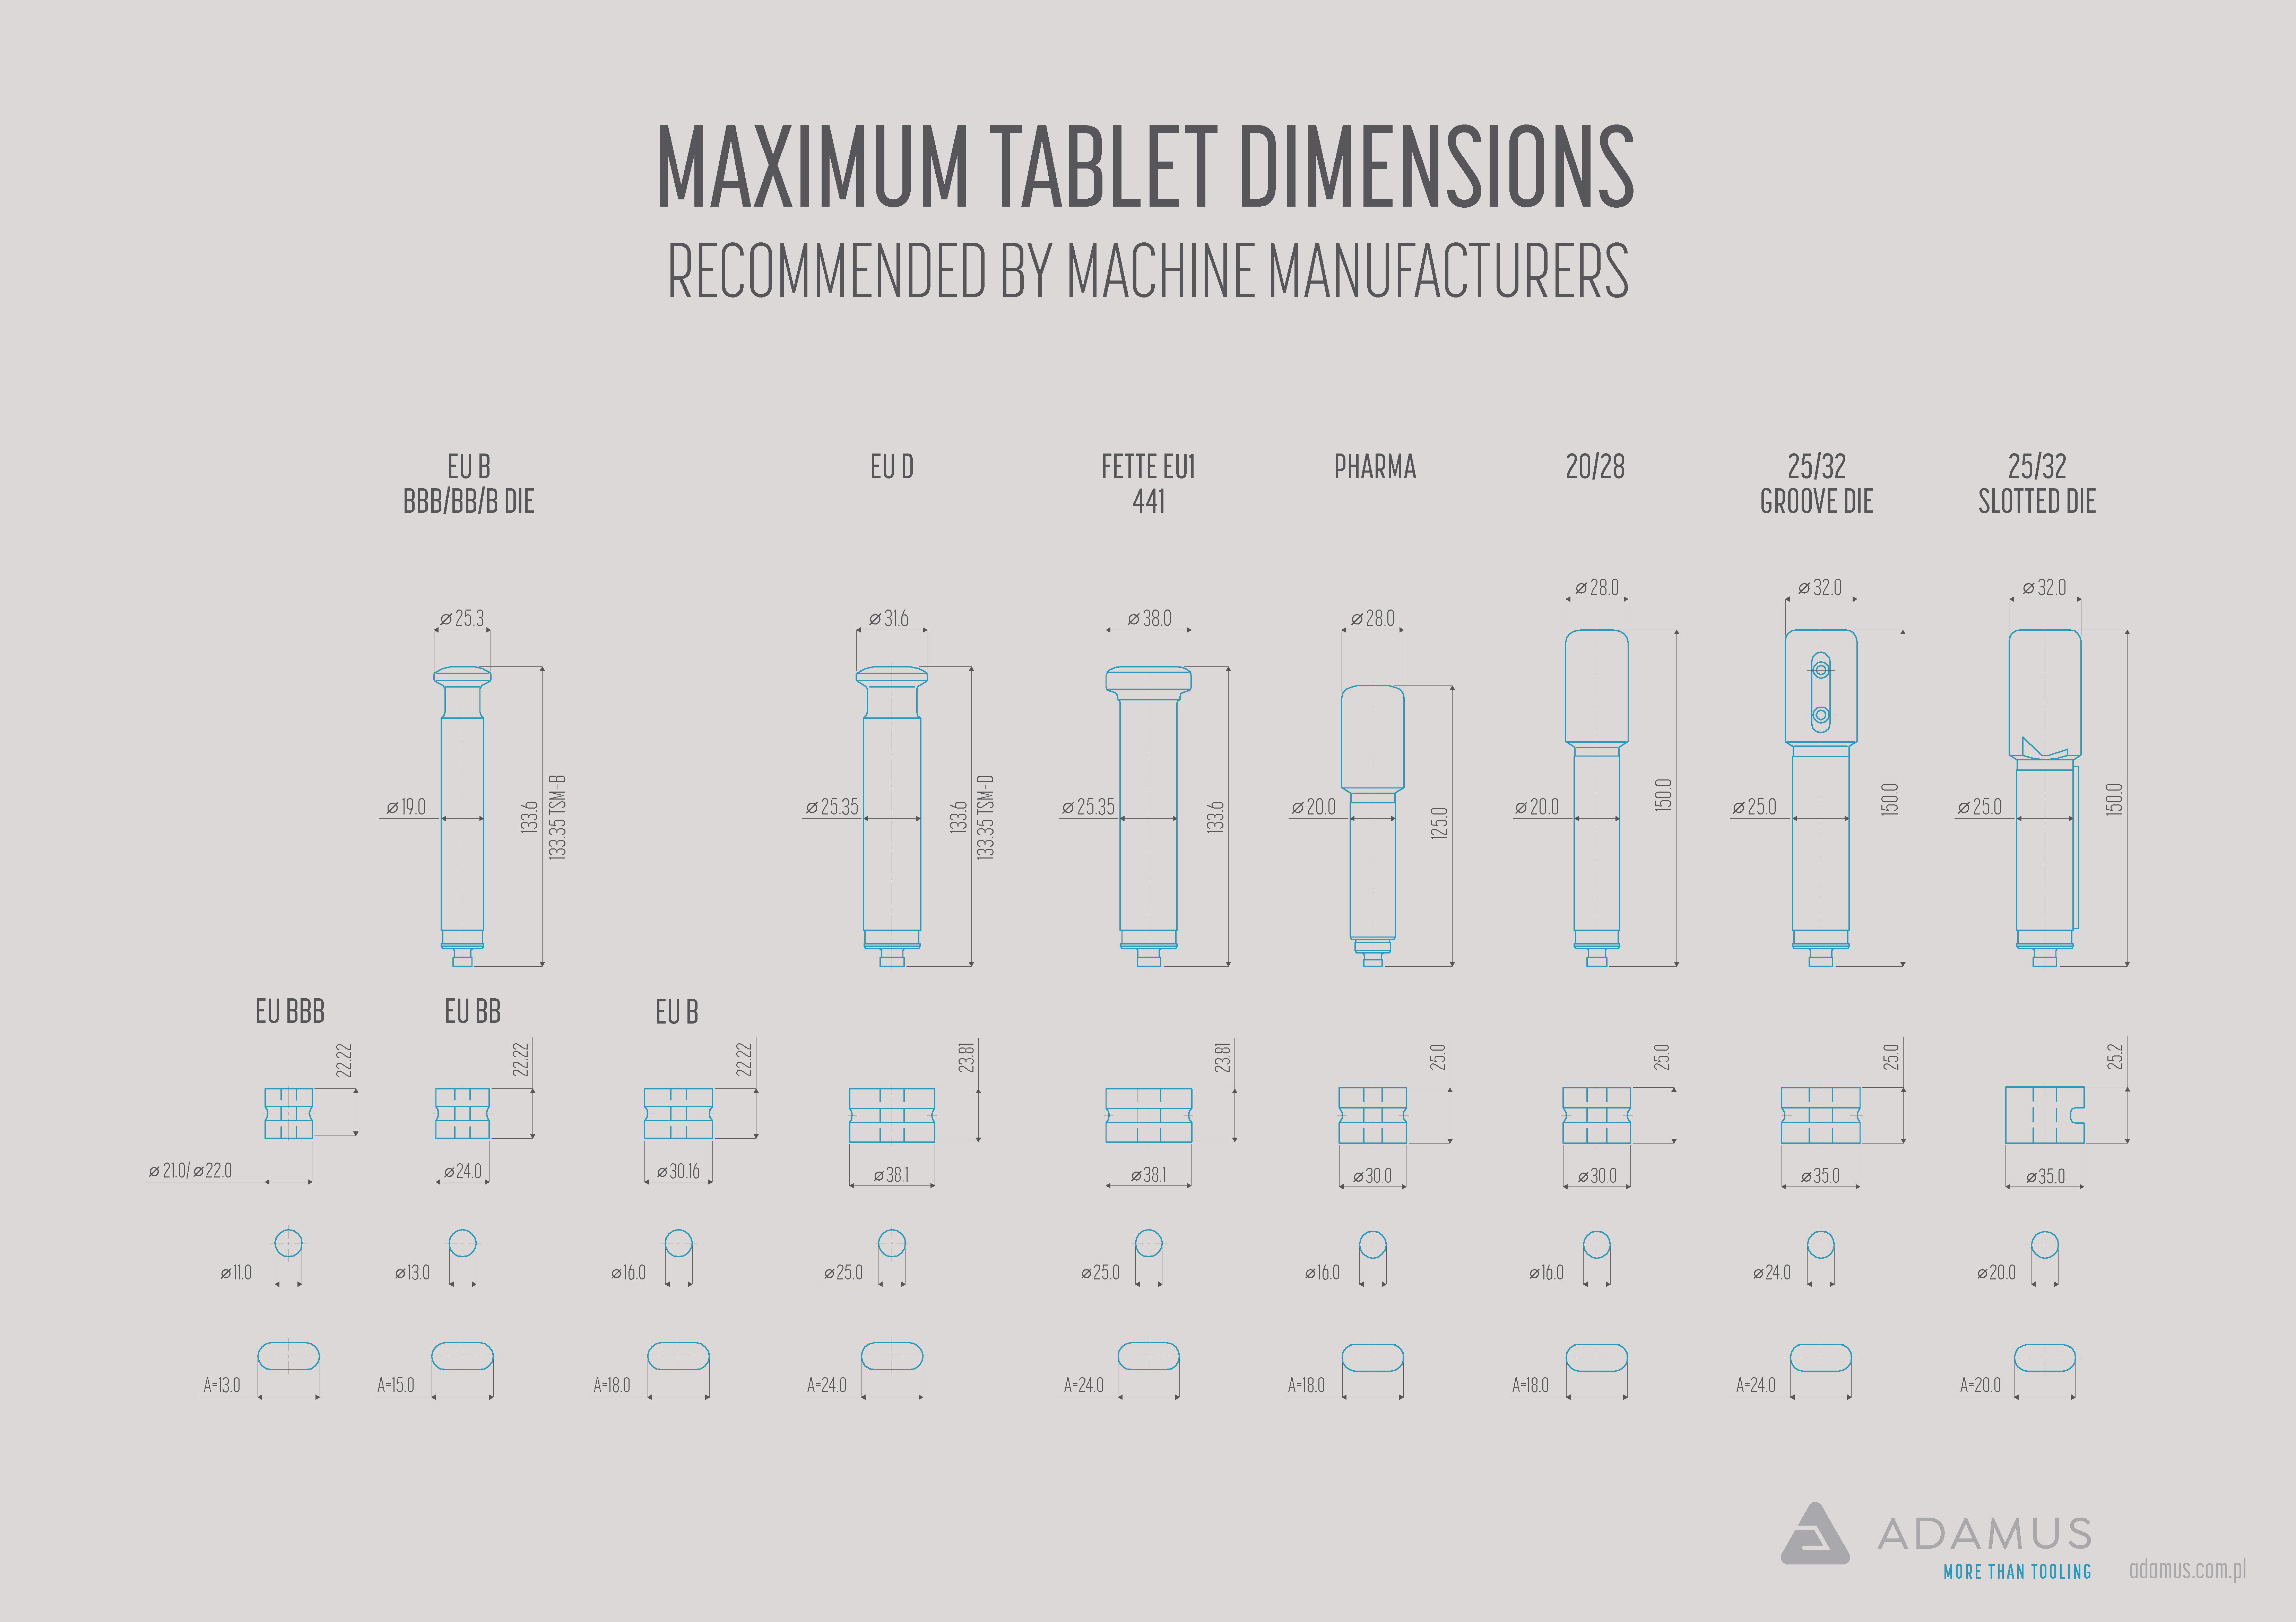 AP Maximum tablet dimensions 19.03.2020